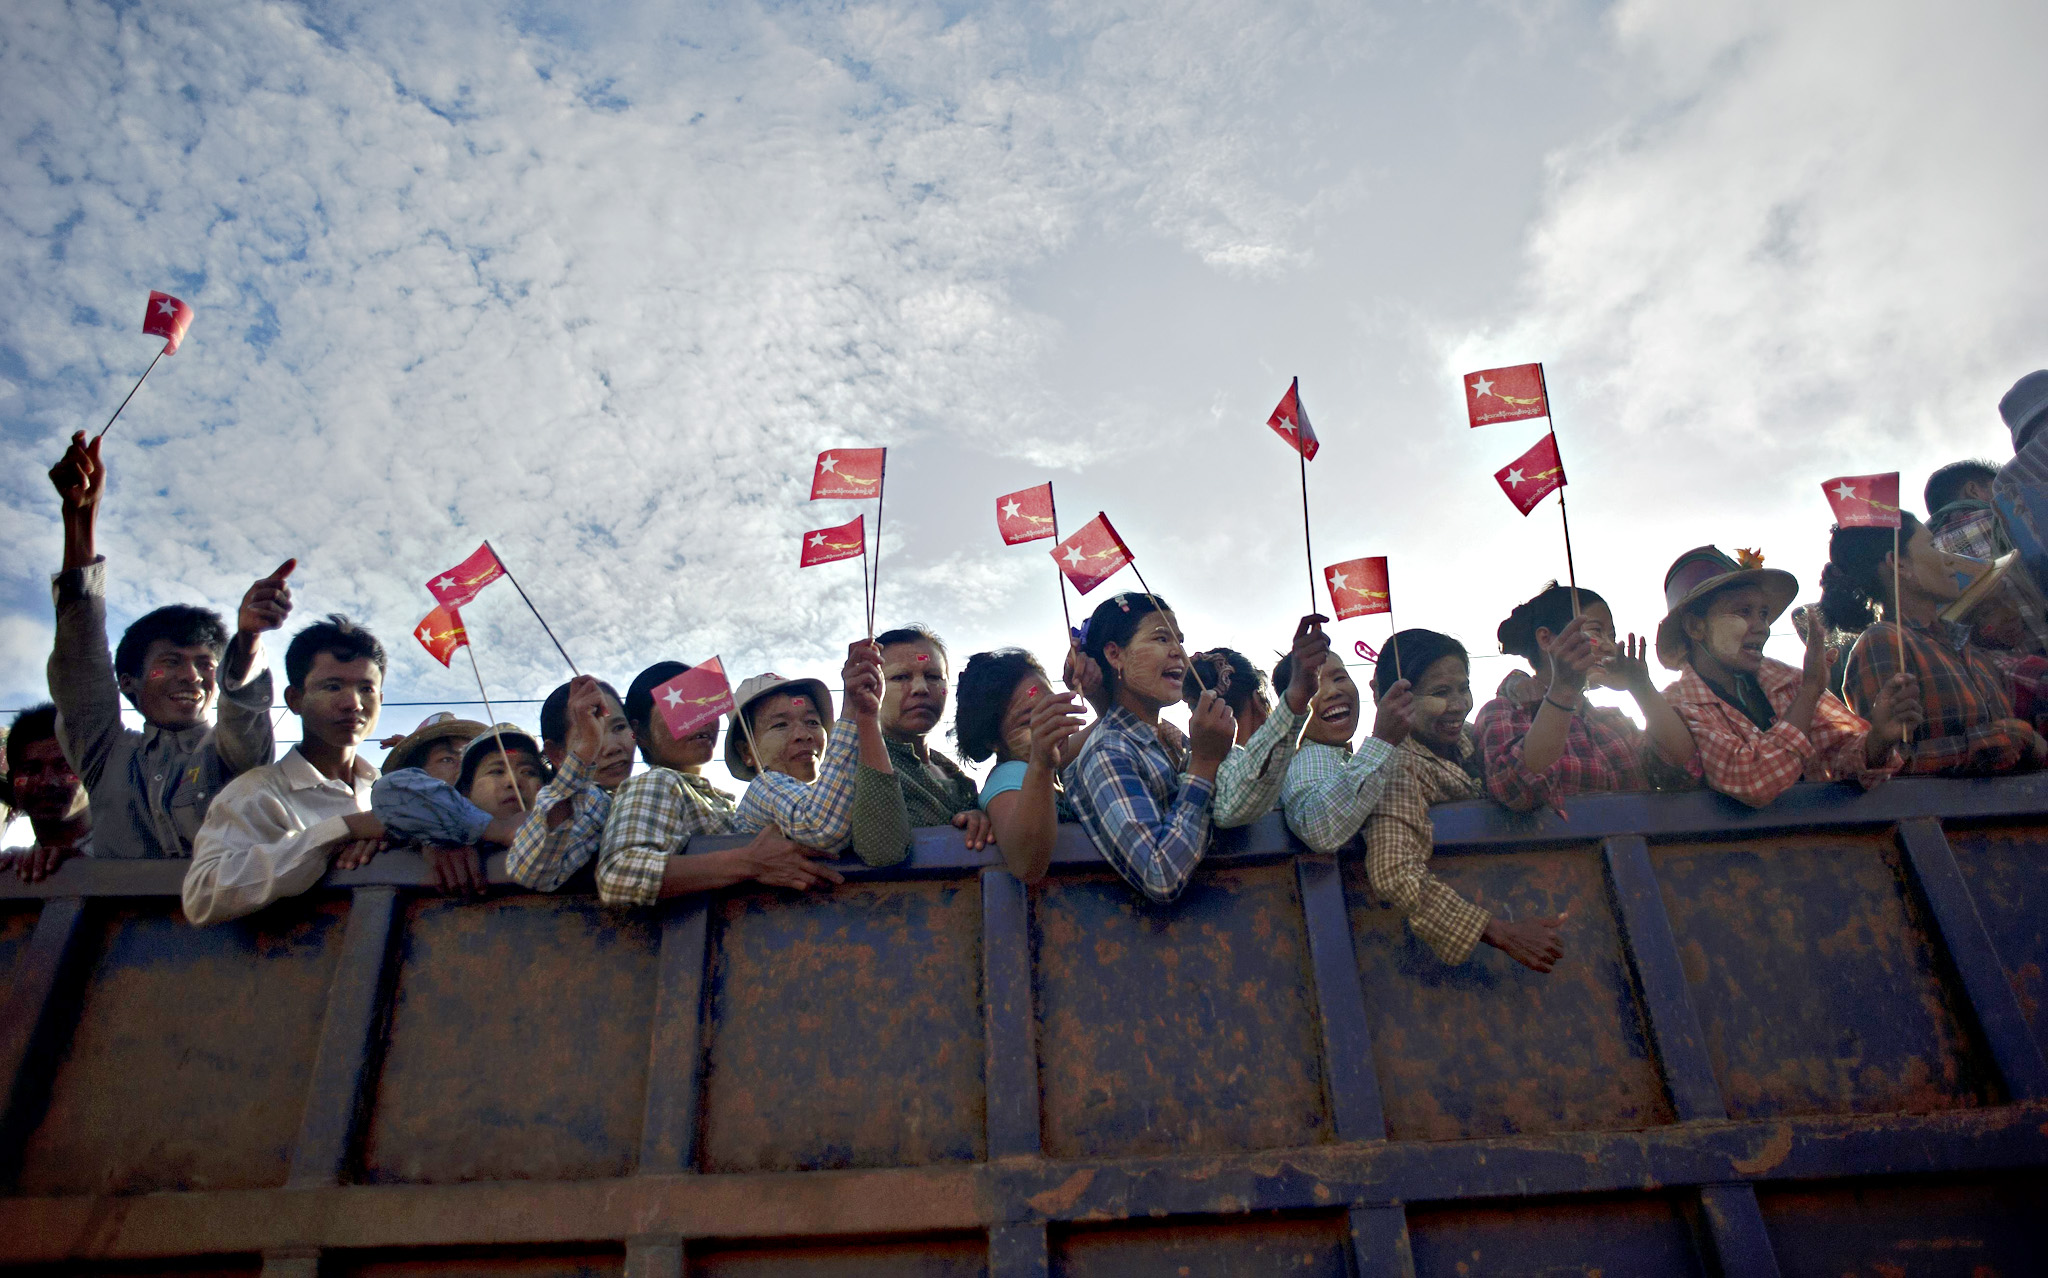 National League for Democracy chairperson Aung San Suu Kyi during her election campaign rally in Kawhmu township on September 22, 2015. While her National League for Democracy (NLD) party is expected to triumph at key elections this year, Suu Kyi's pathway to the presidency is blocked by a controversial clause in Myanmar's junta-era constitution